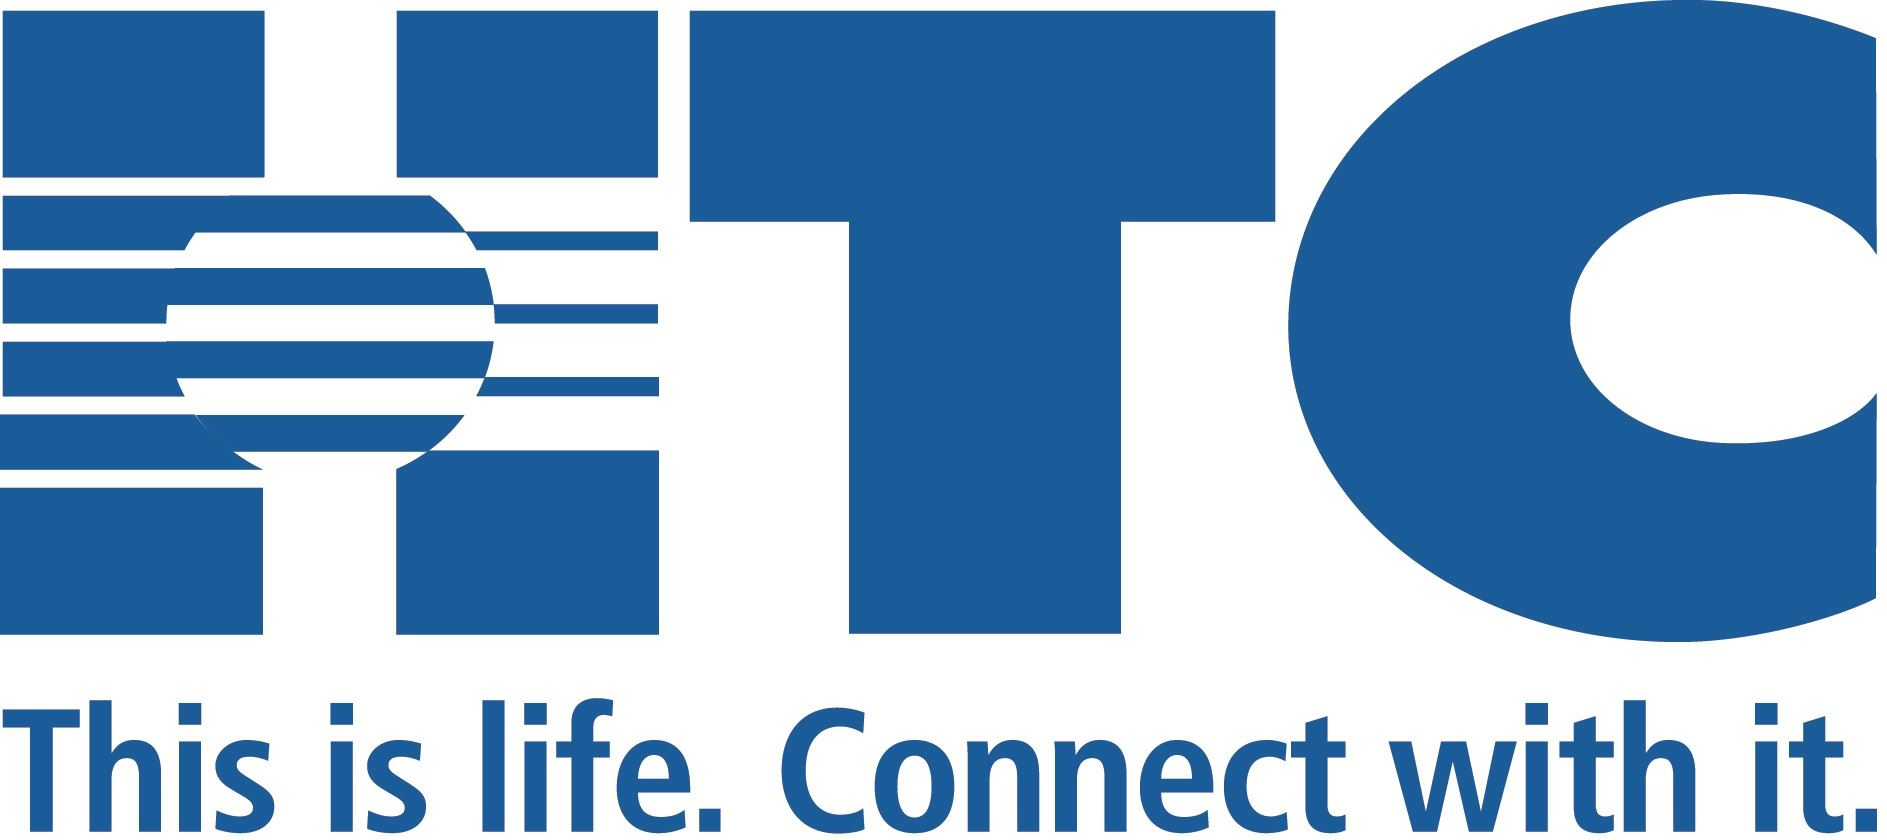 HTC Logo with Tagline